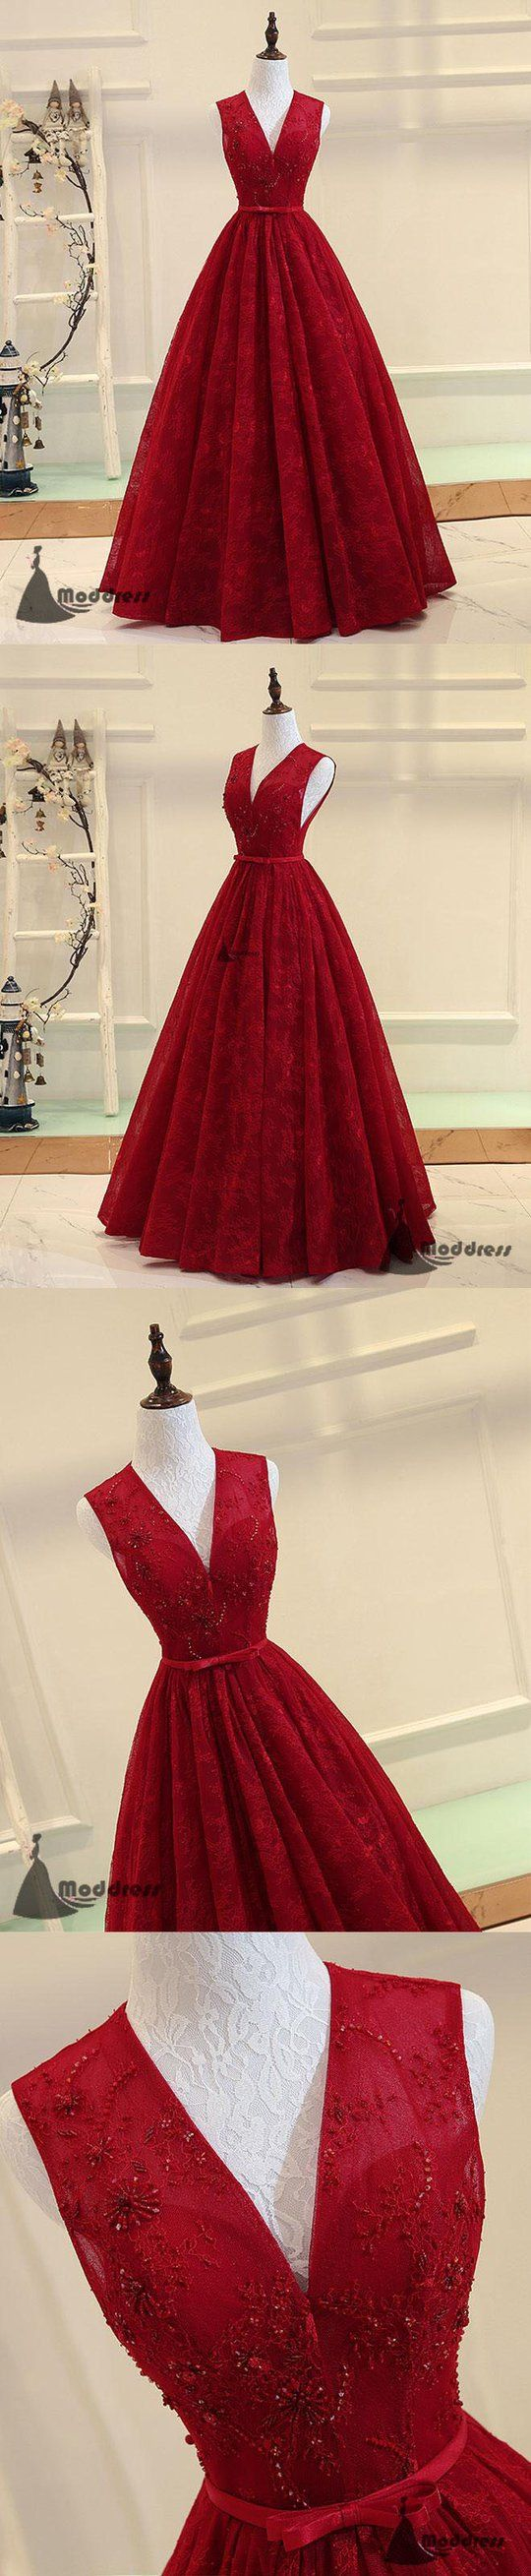 V-Neck Long Prom Dress Lace Sleeveless Evening Dress A-line Formal Dress,HS498 #fashion#promdress#eveningdress#promgowns#cocktaildress